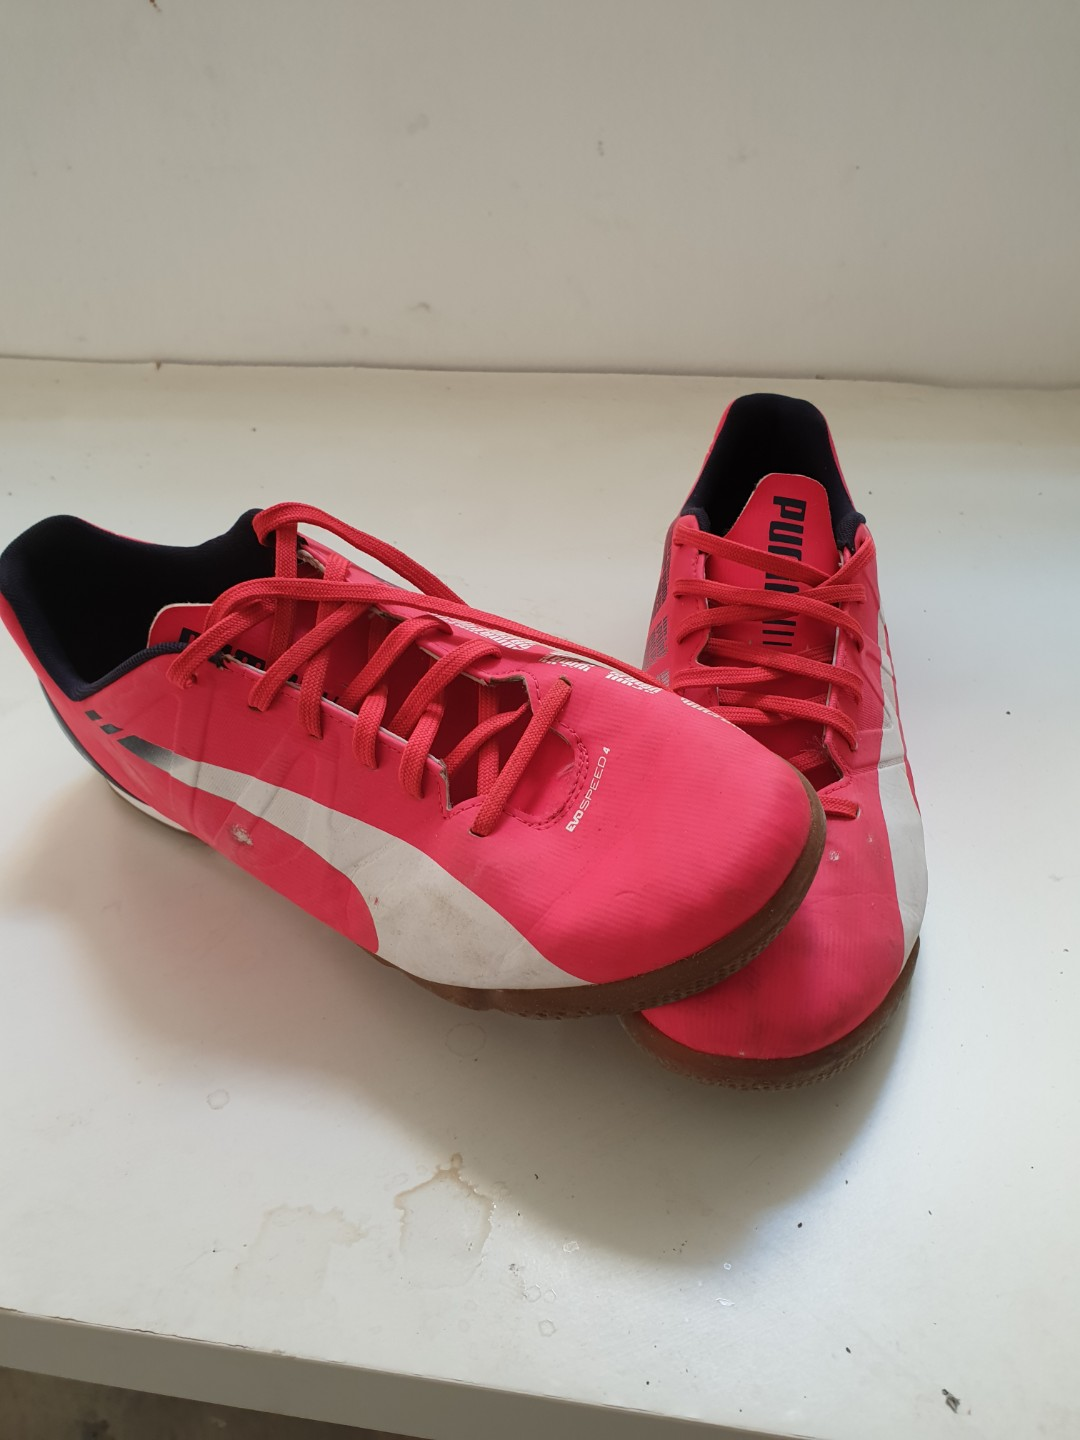 8af0dbba2243 Puma street soccer shoe, Men's Fashion, Footwear, Others on Carousell